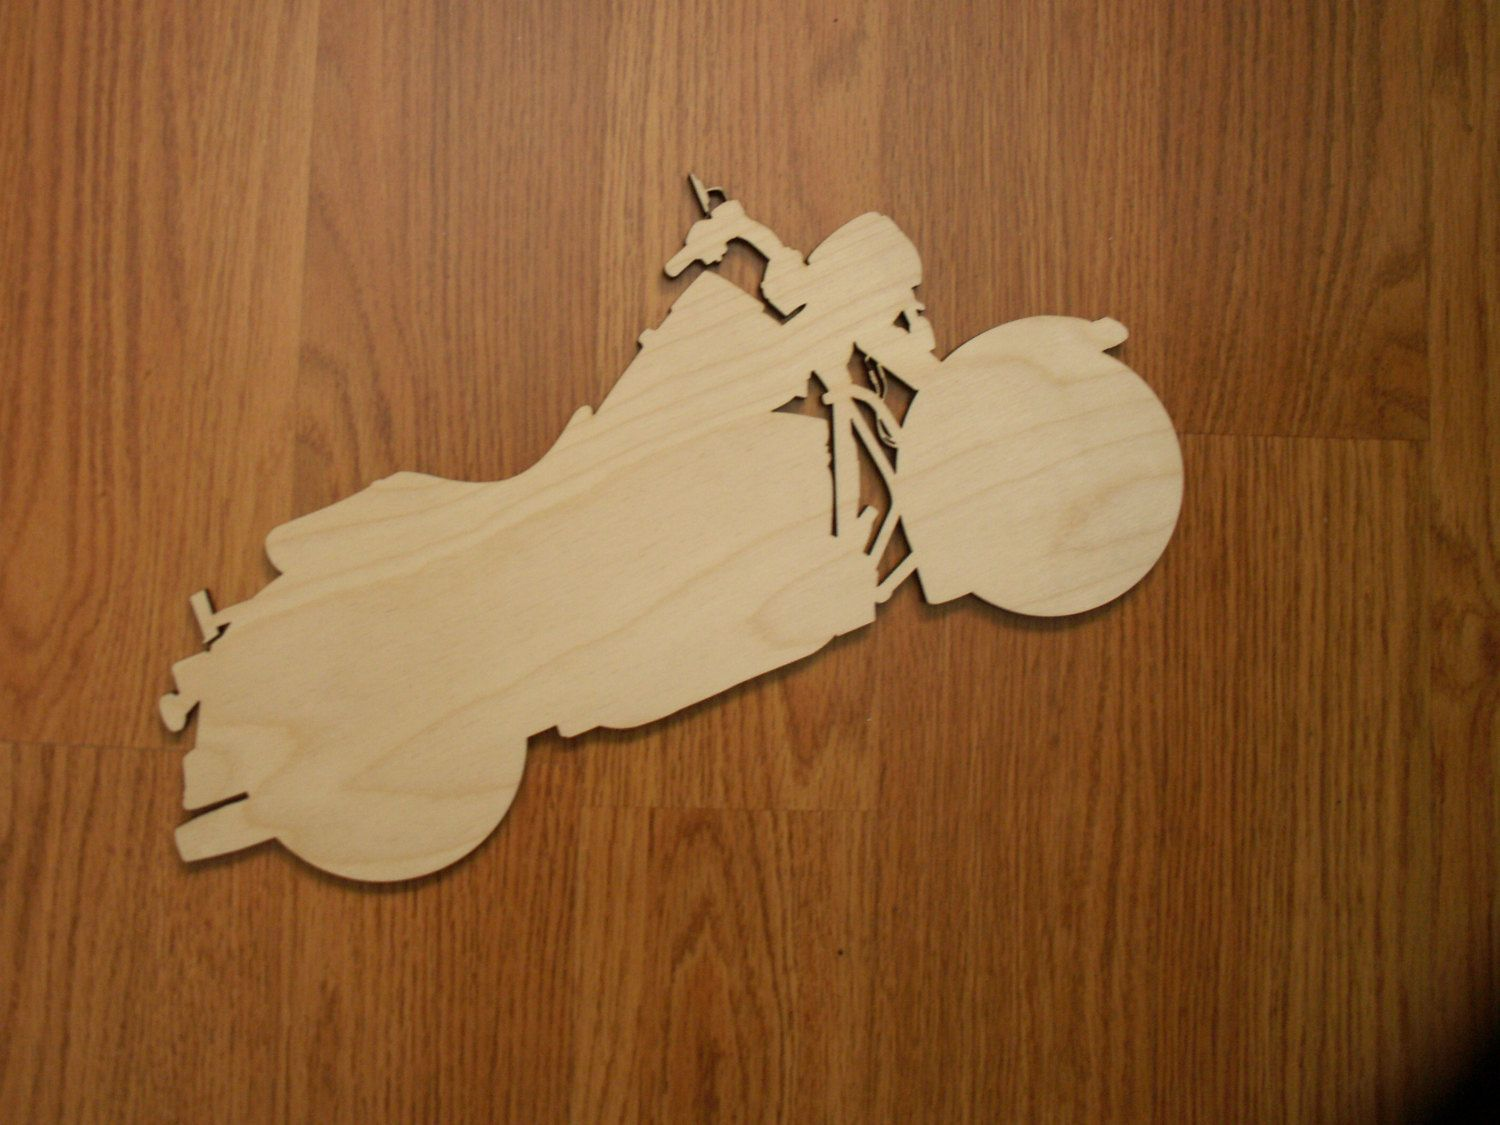 Motorcycle Wood Cutout, Laser Cutouts, Unfinished Wood, Home Decor ...